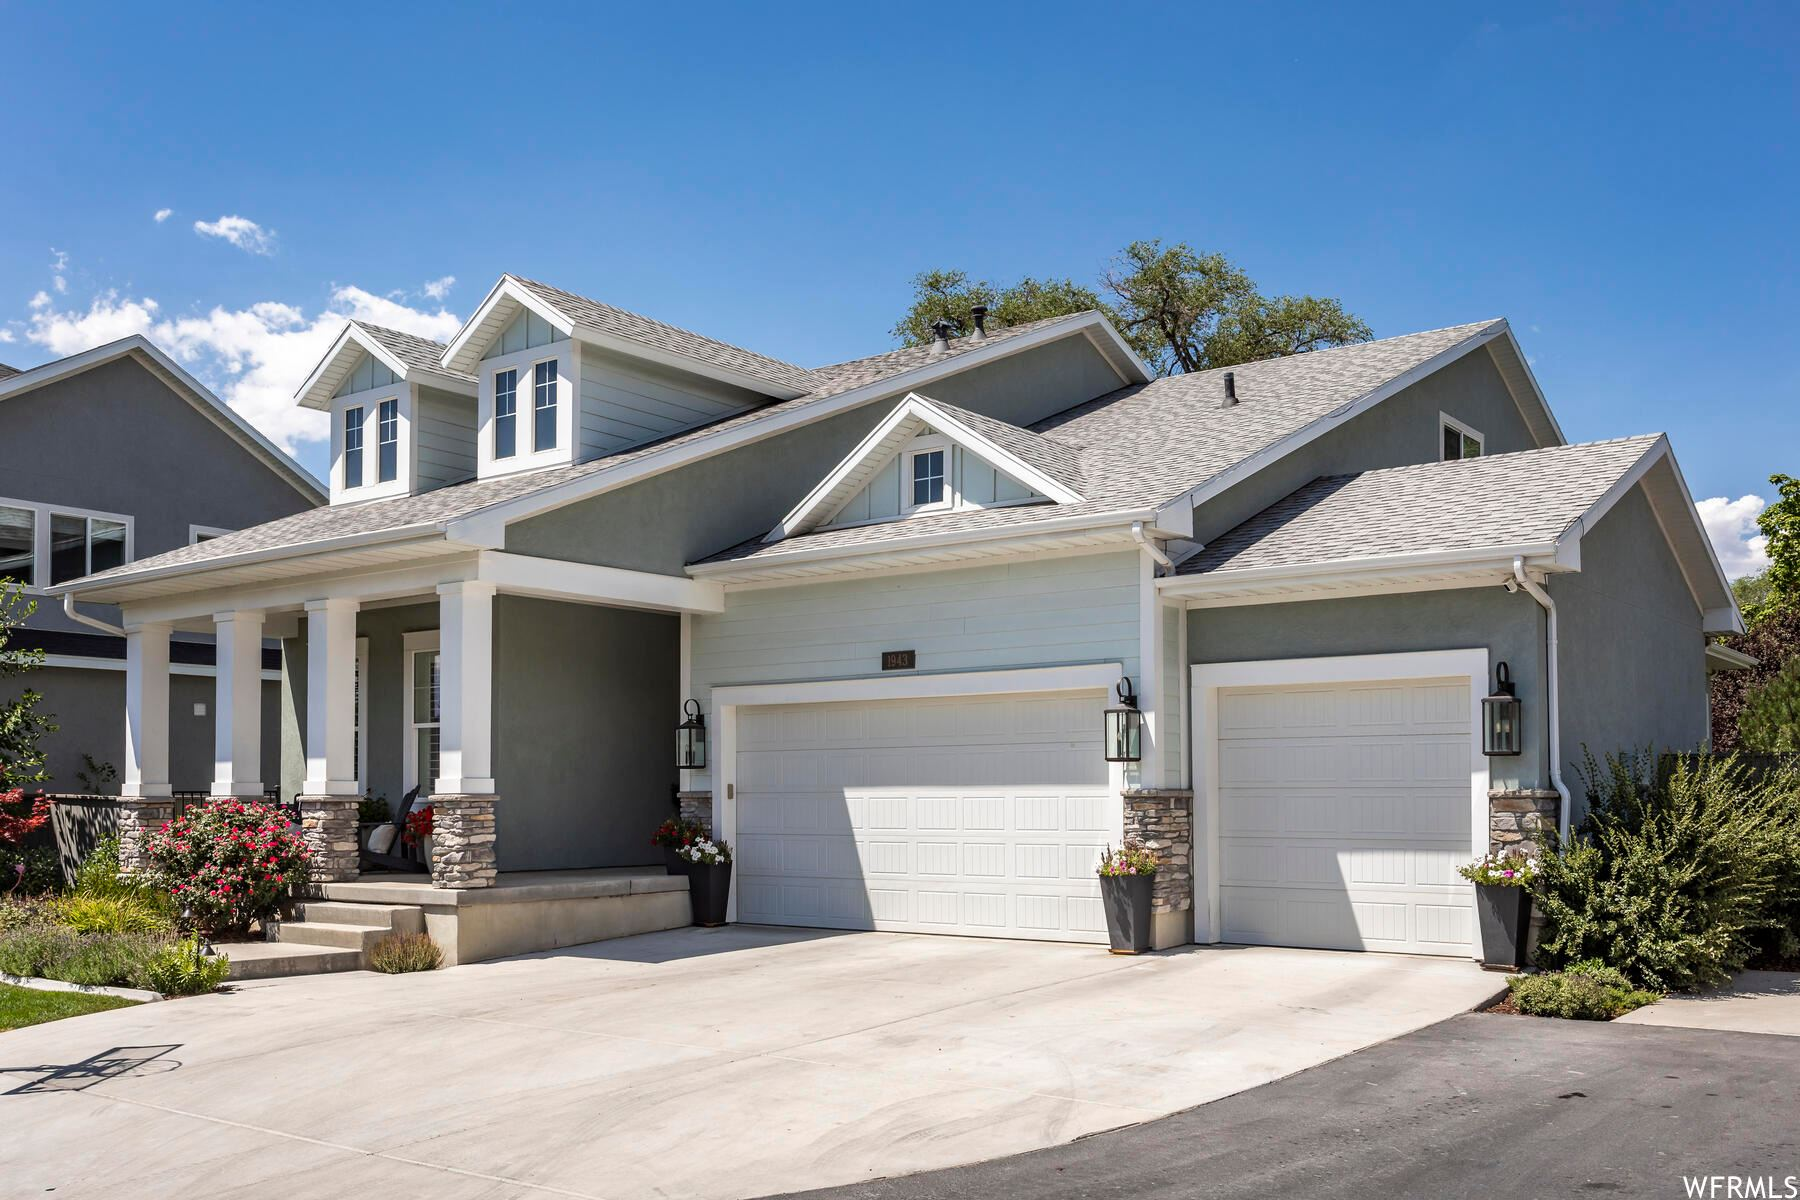 Photo of 1943 E HIGHLAND PLACE S LN, Holladay, UT 84117 (MLS # 1757157)